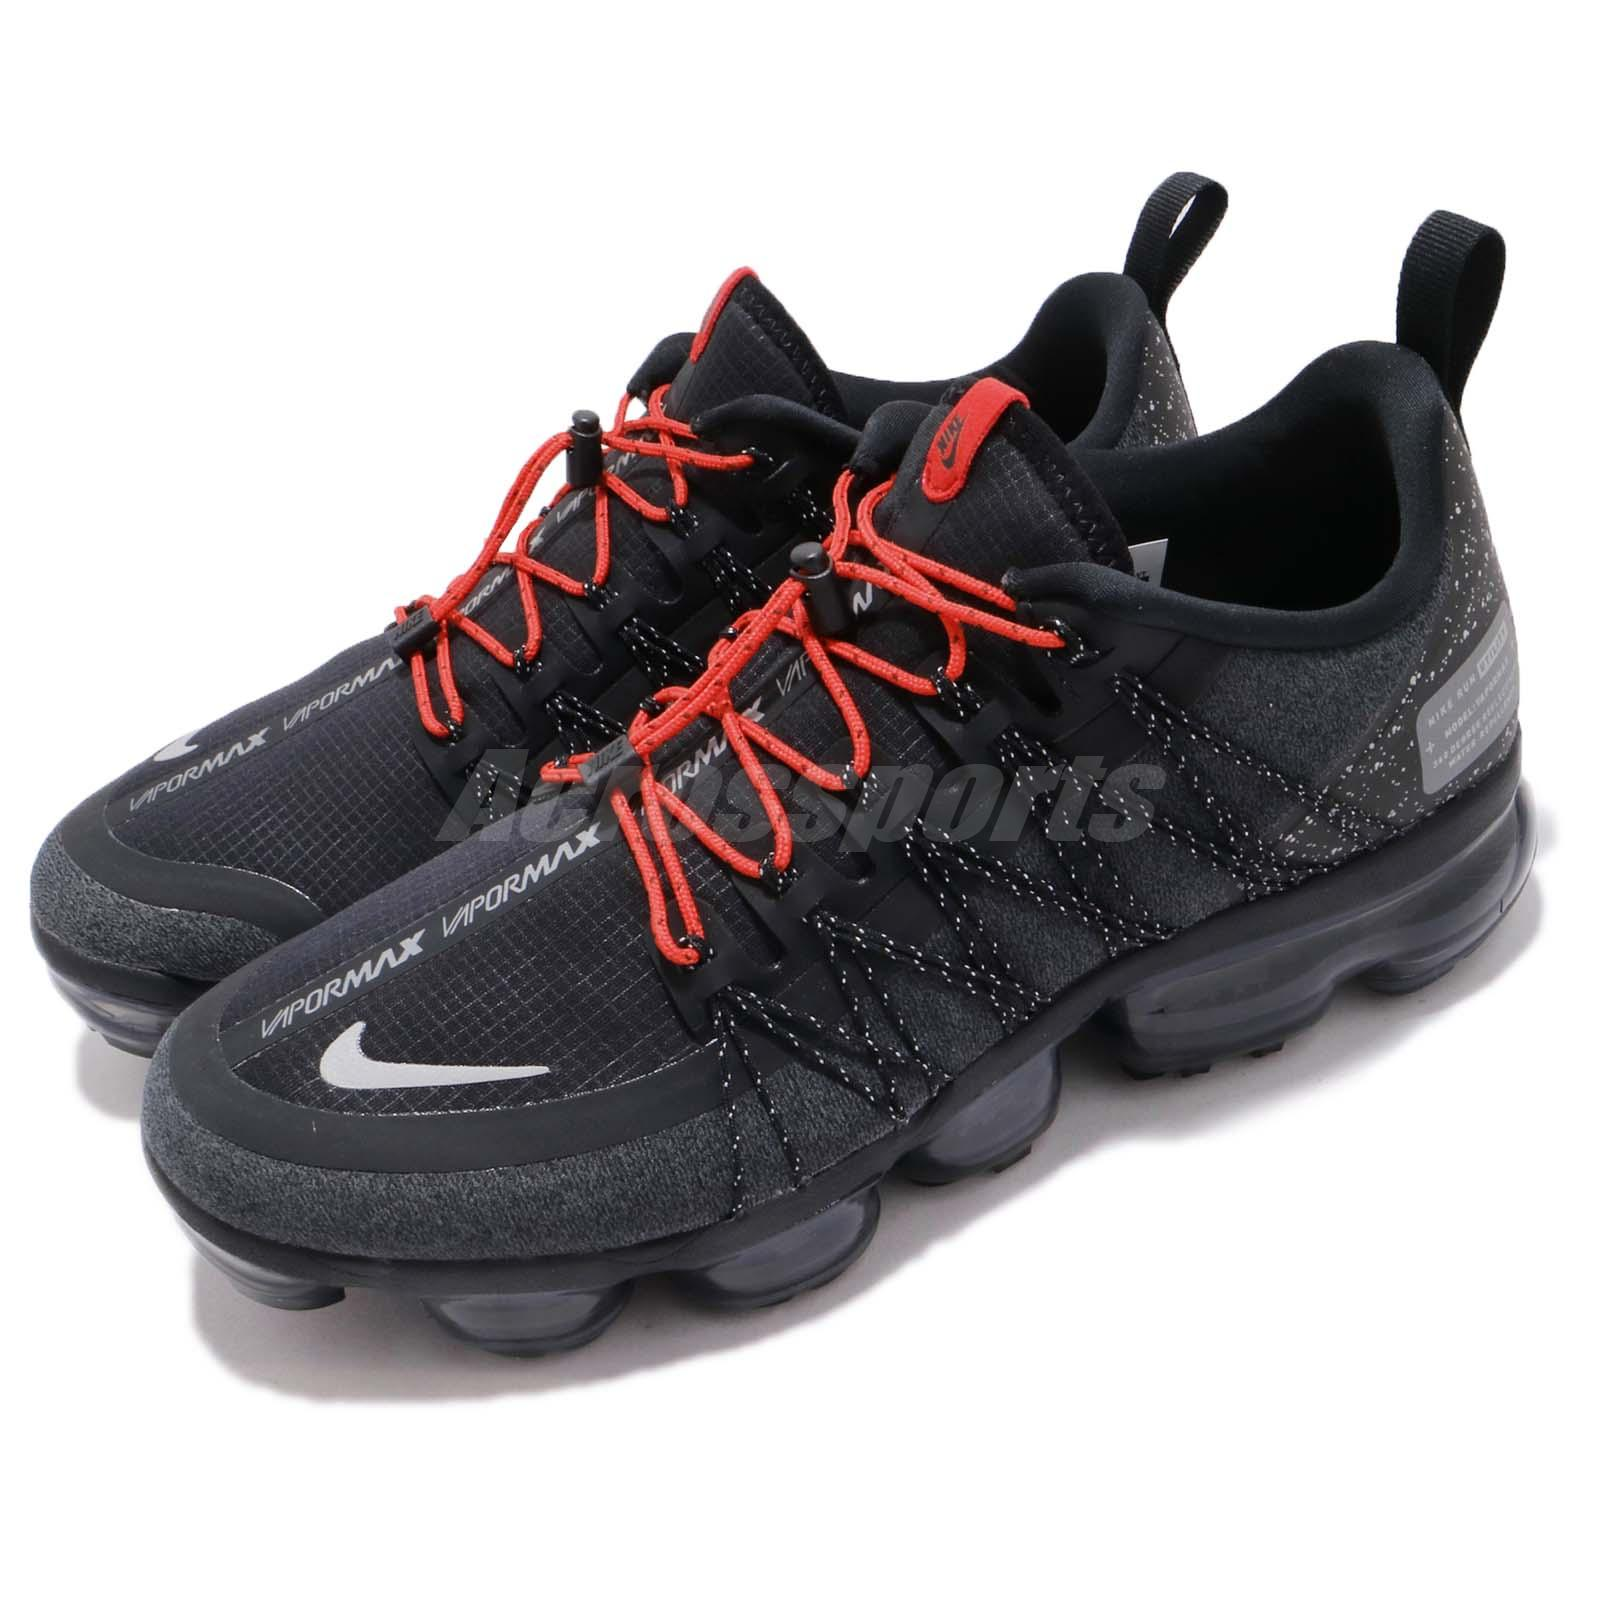 check out fb03e ae8e4 Details about Nike Air Vapormax Run Utility Black Reflect Silver Mens  Running Shoes AQ8810-001